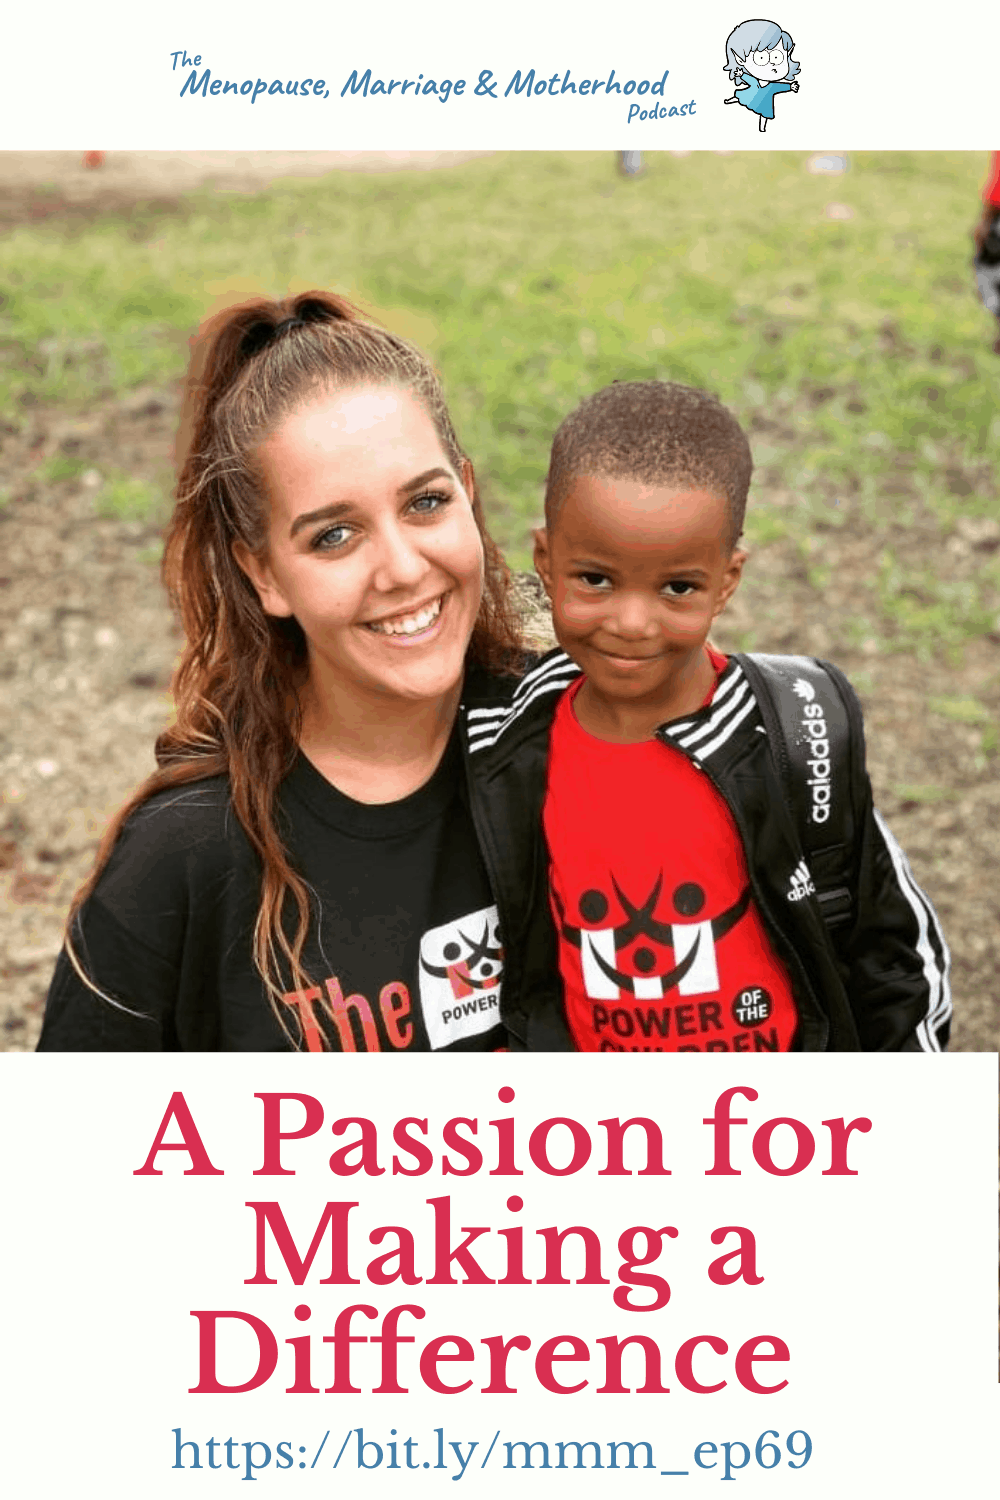 Passion for Charity with Lucy Obod